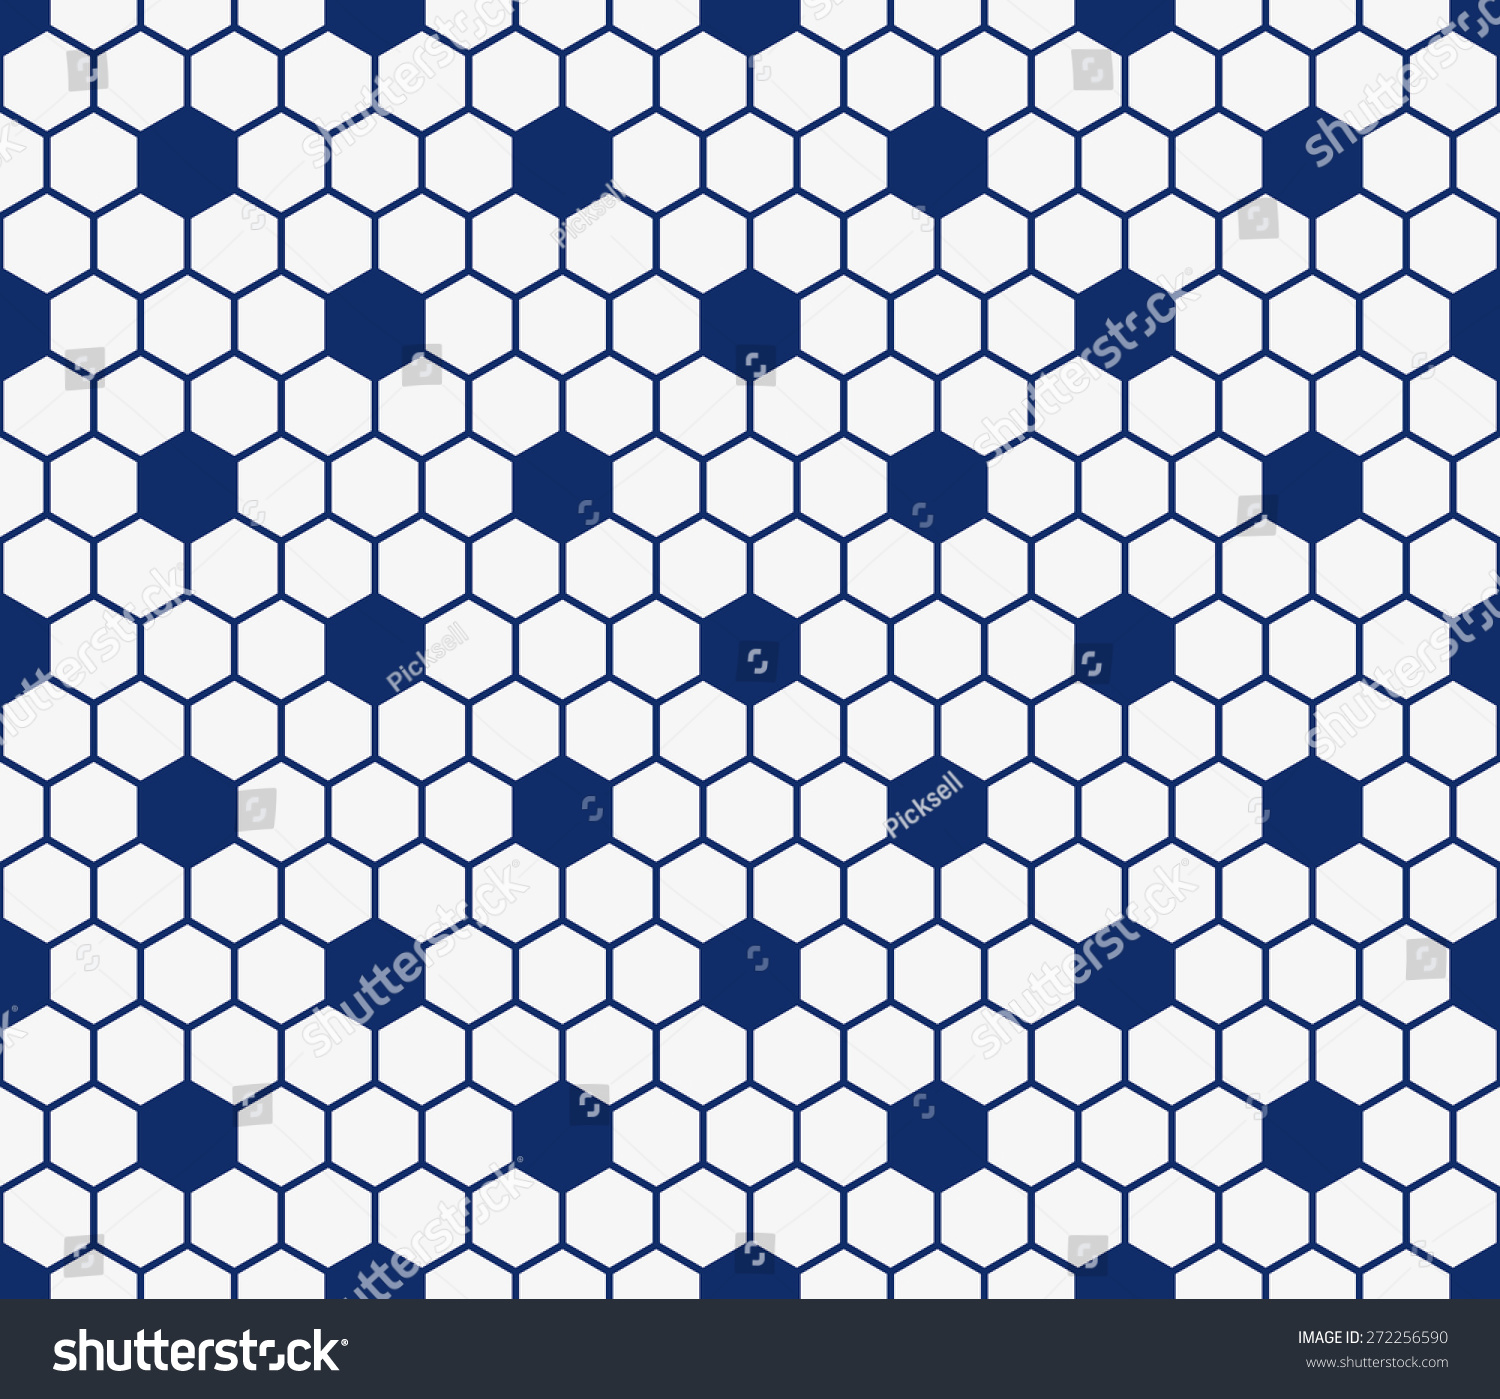 Seamless Porcelain Indigo Blue And White Hexagon Honeycomb